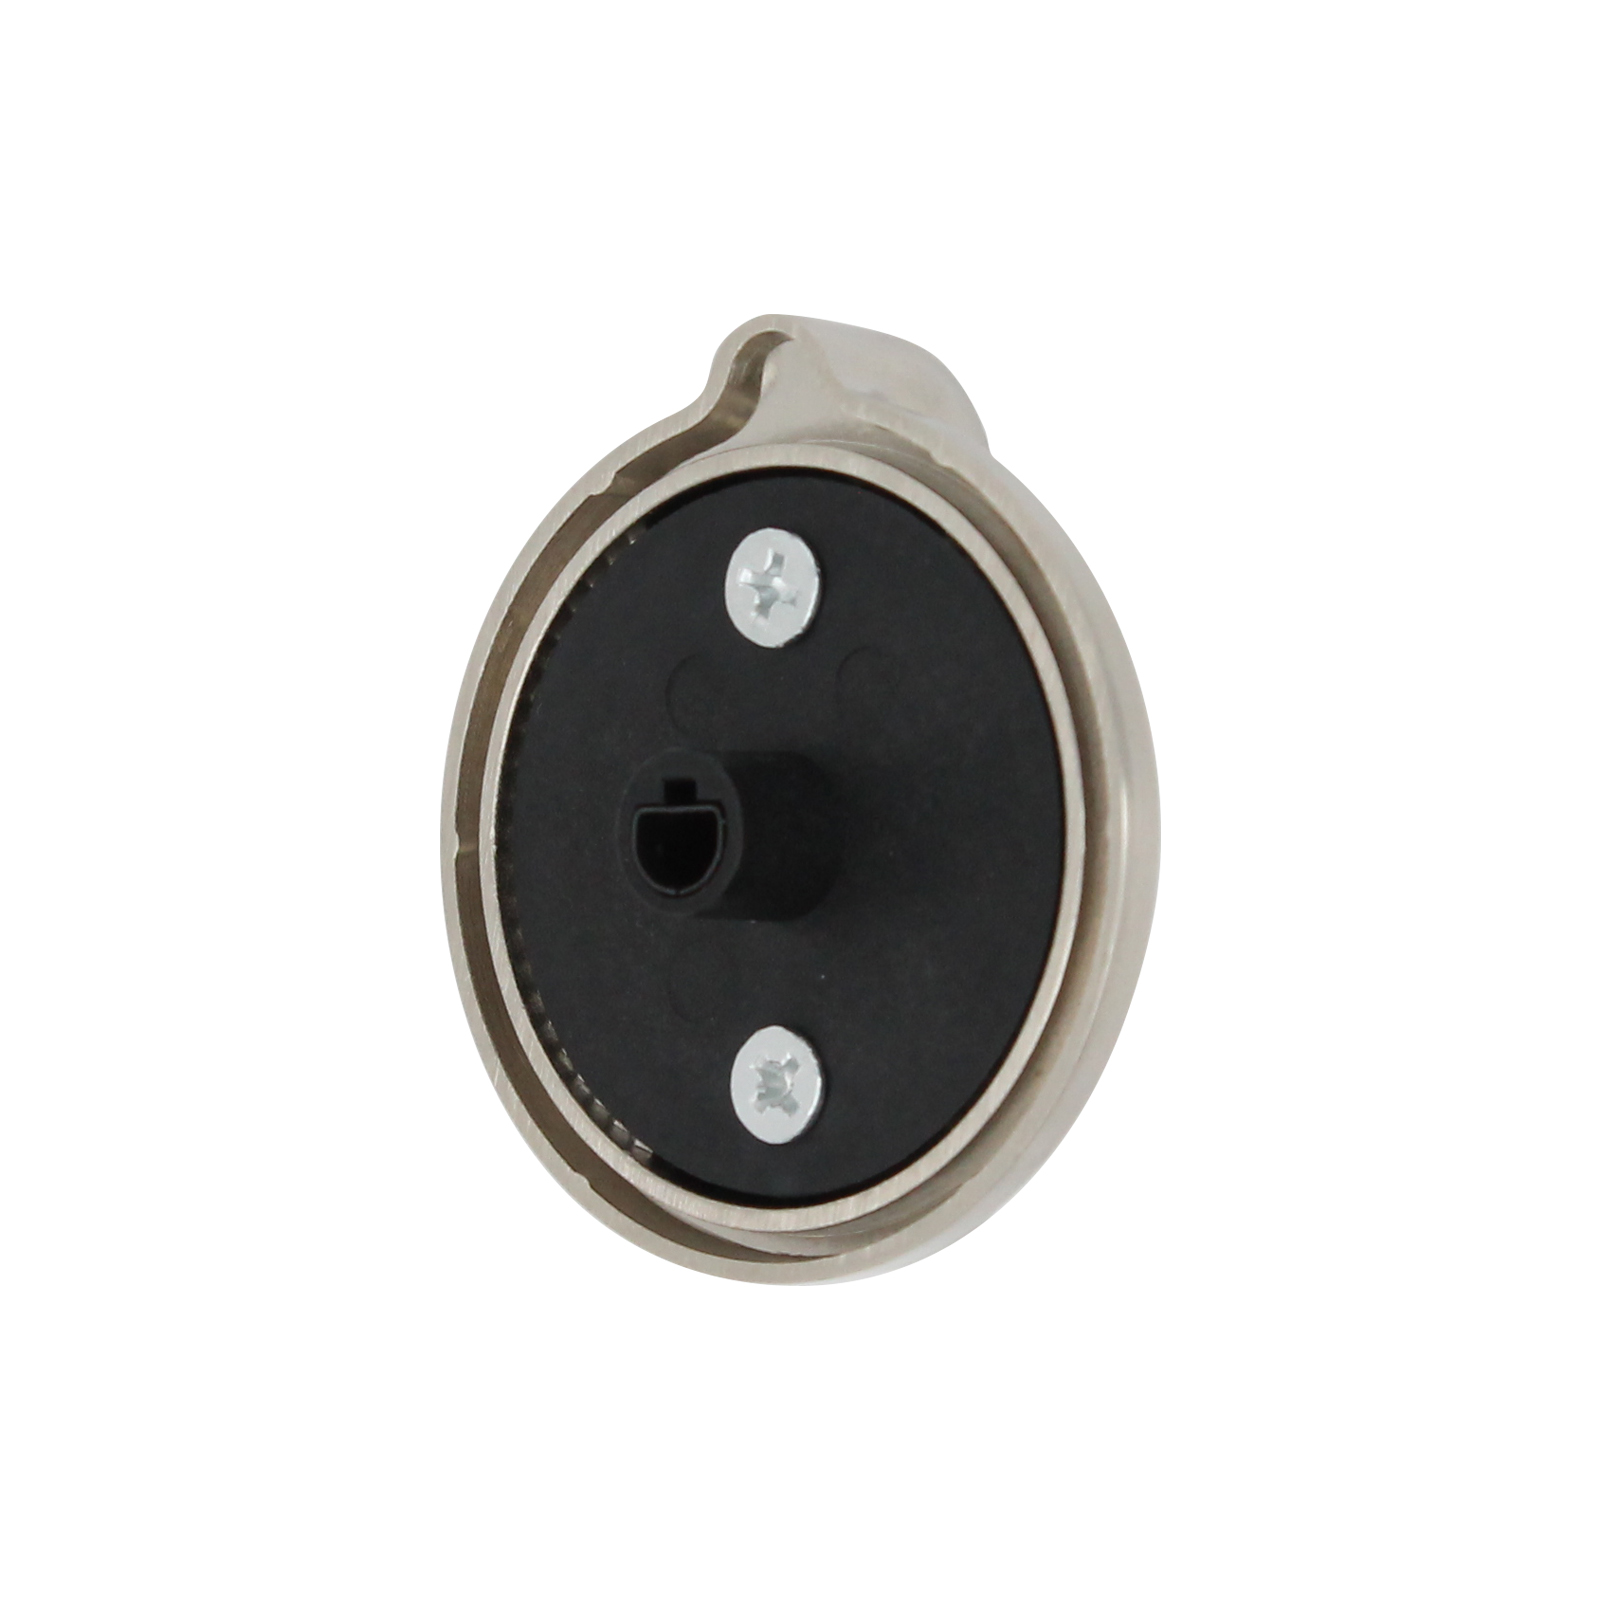 Replacement Surface Burner Control WB03K10303 Range, Stove, Oven Control Knob for General Electric P2B918SEM1SS Dual Fuel Range - image 2 of 4